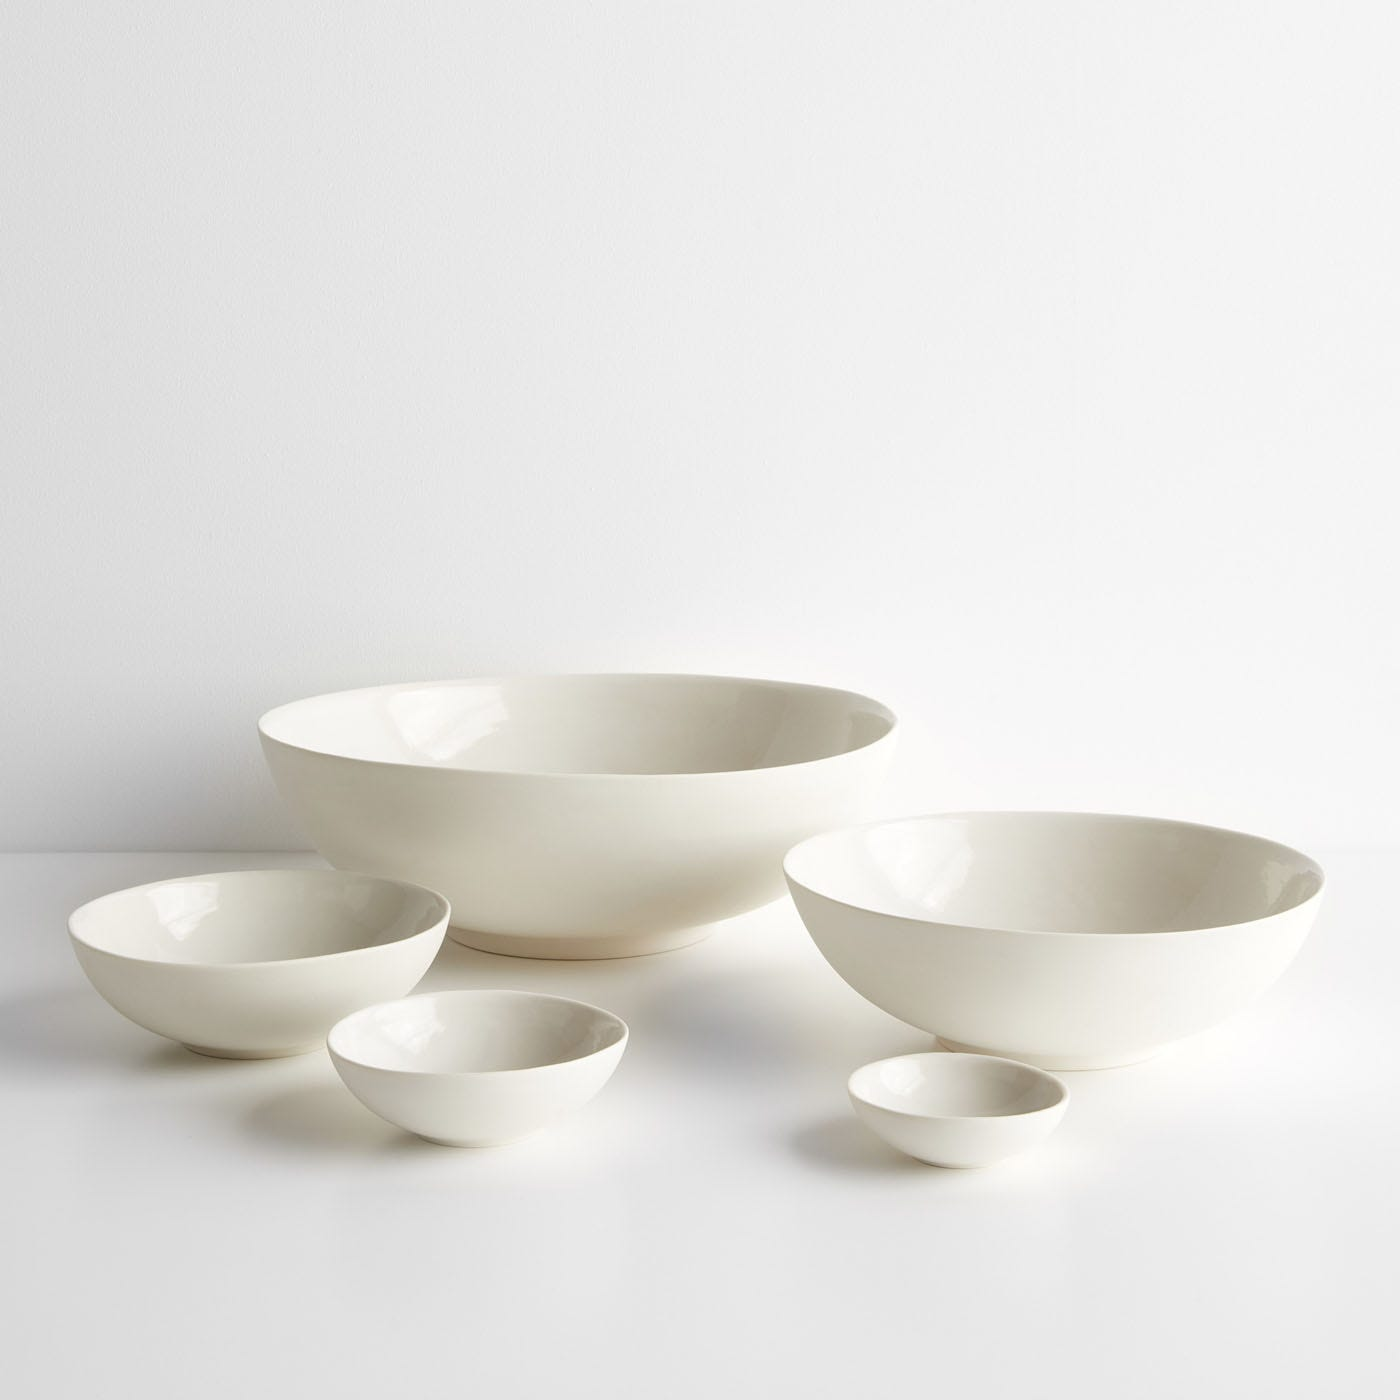 Marcy Ivory White Nesting Bowls Set of 5